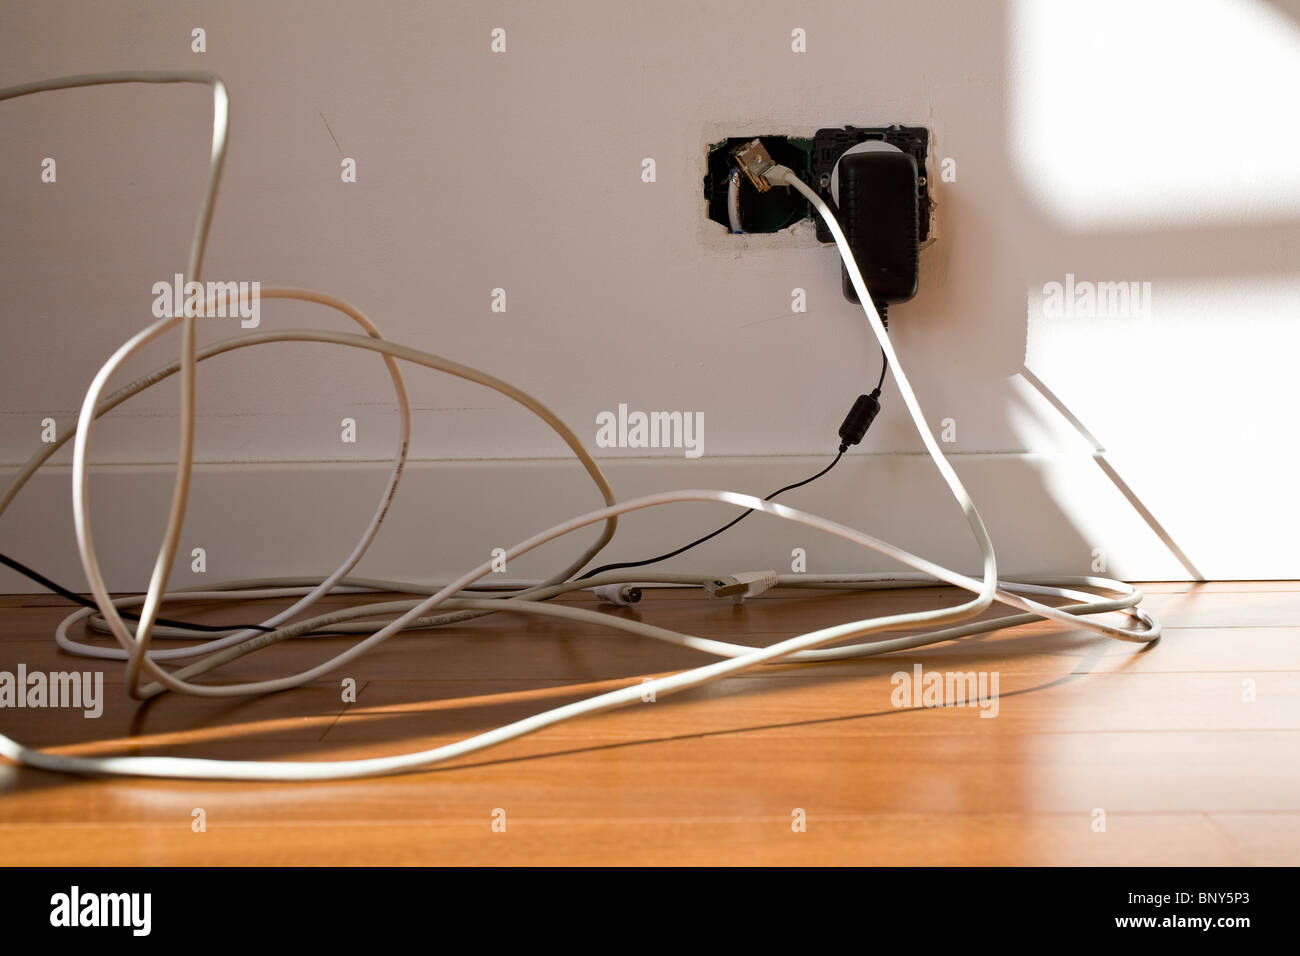 Electric cords plugged into exposed outlet - Stock Image